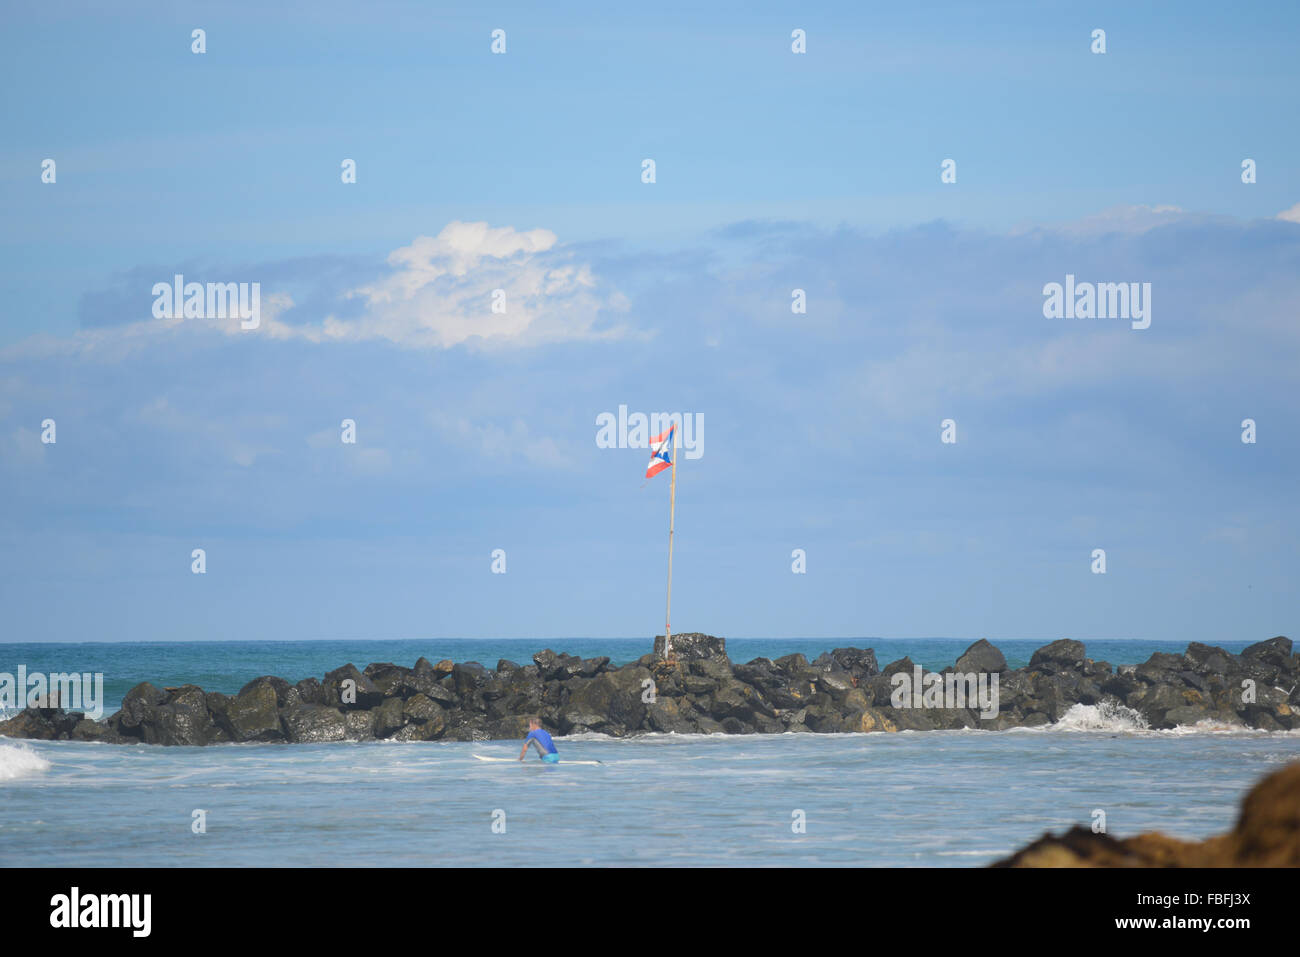 Puertorican Flag Waving At Domes Beach Detail Of Surfer In The Water Rincon Puerto Rico USA Territory Caribbean Island